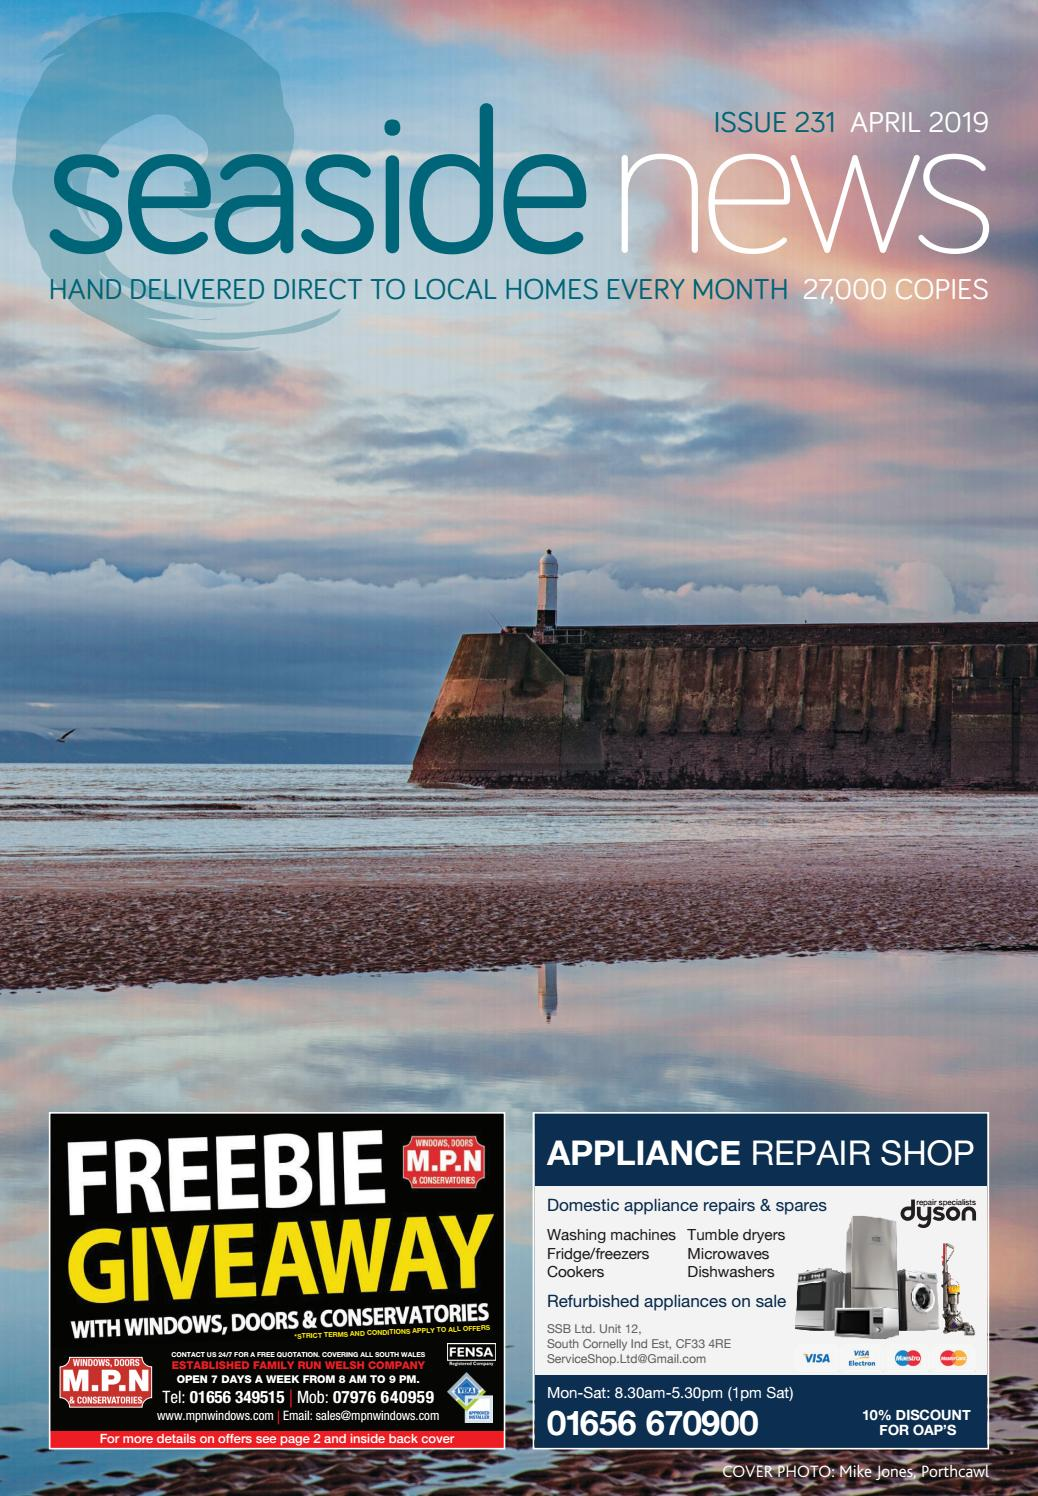 70022e96bd SEASIDE NEWS - APRIL 2019 ISSUE by Seaside News - issuu